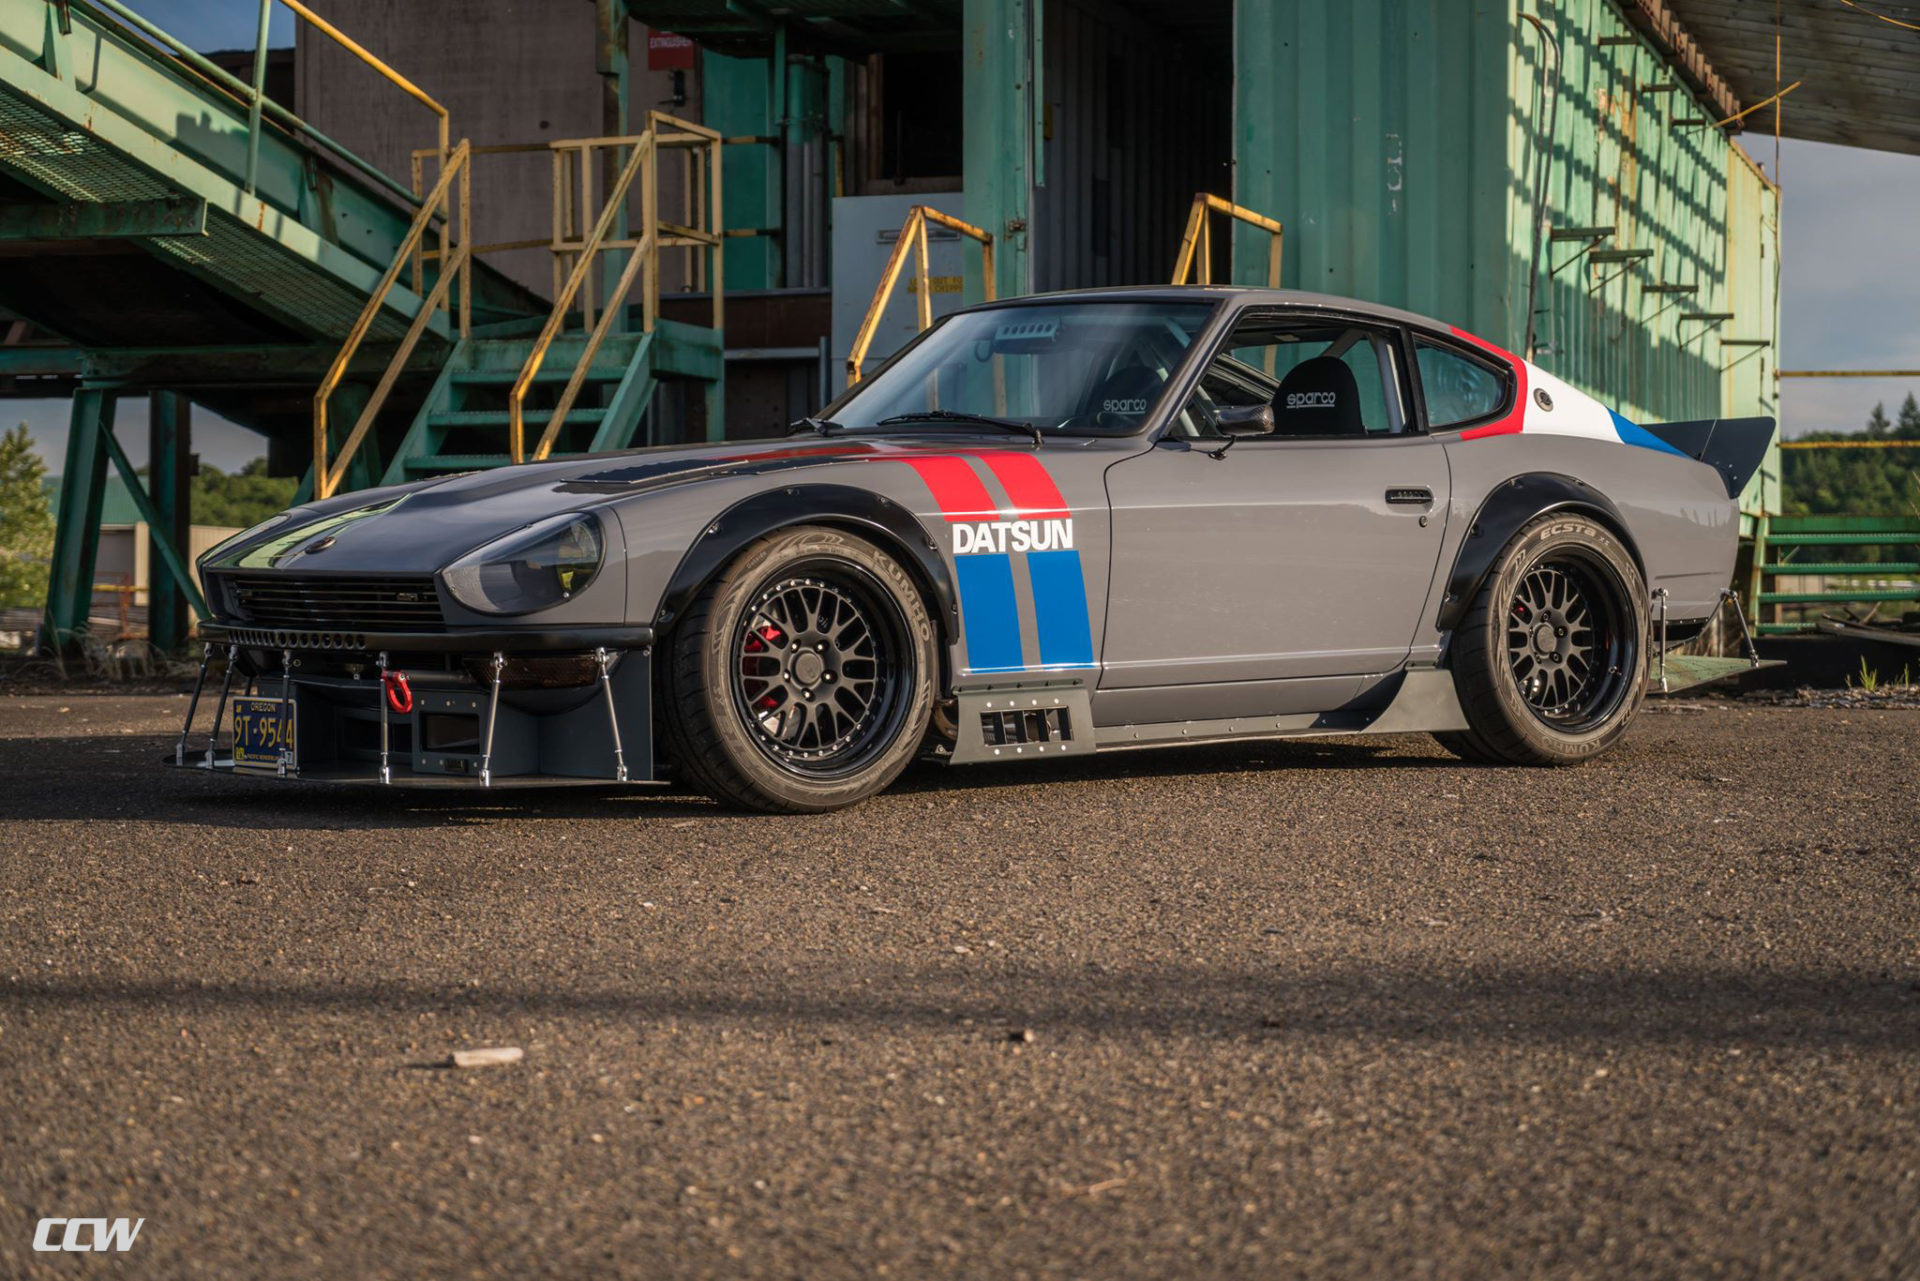 1972 Datsun 240z - CCW LM20 Three-Piece Forged Wheels